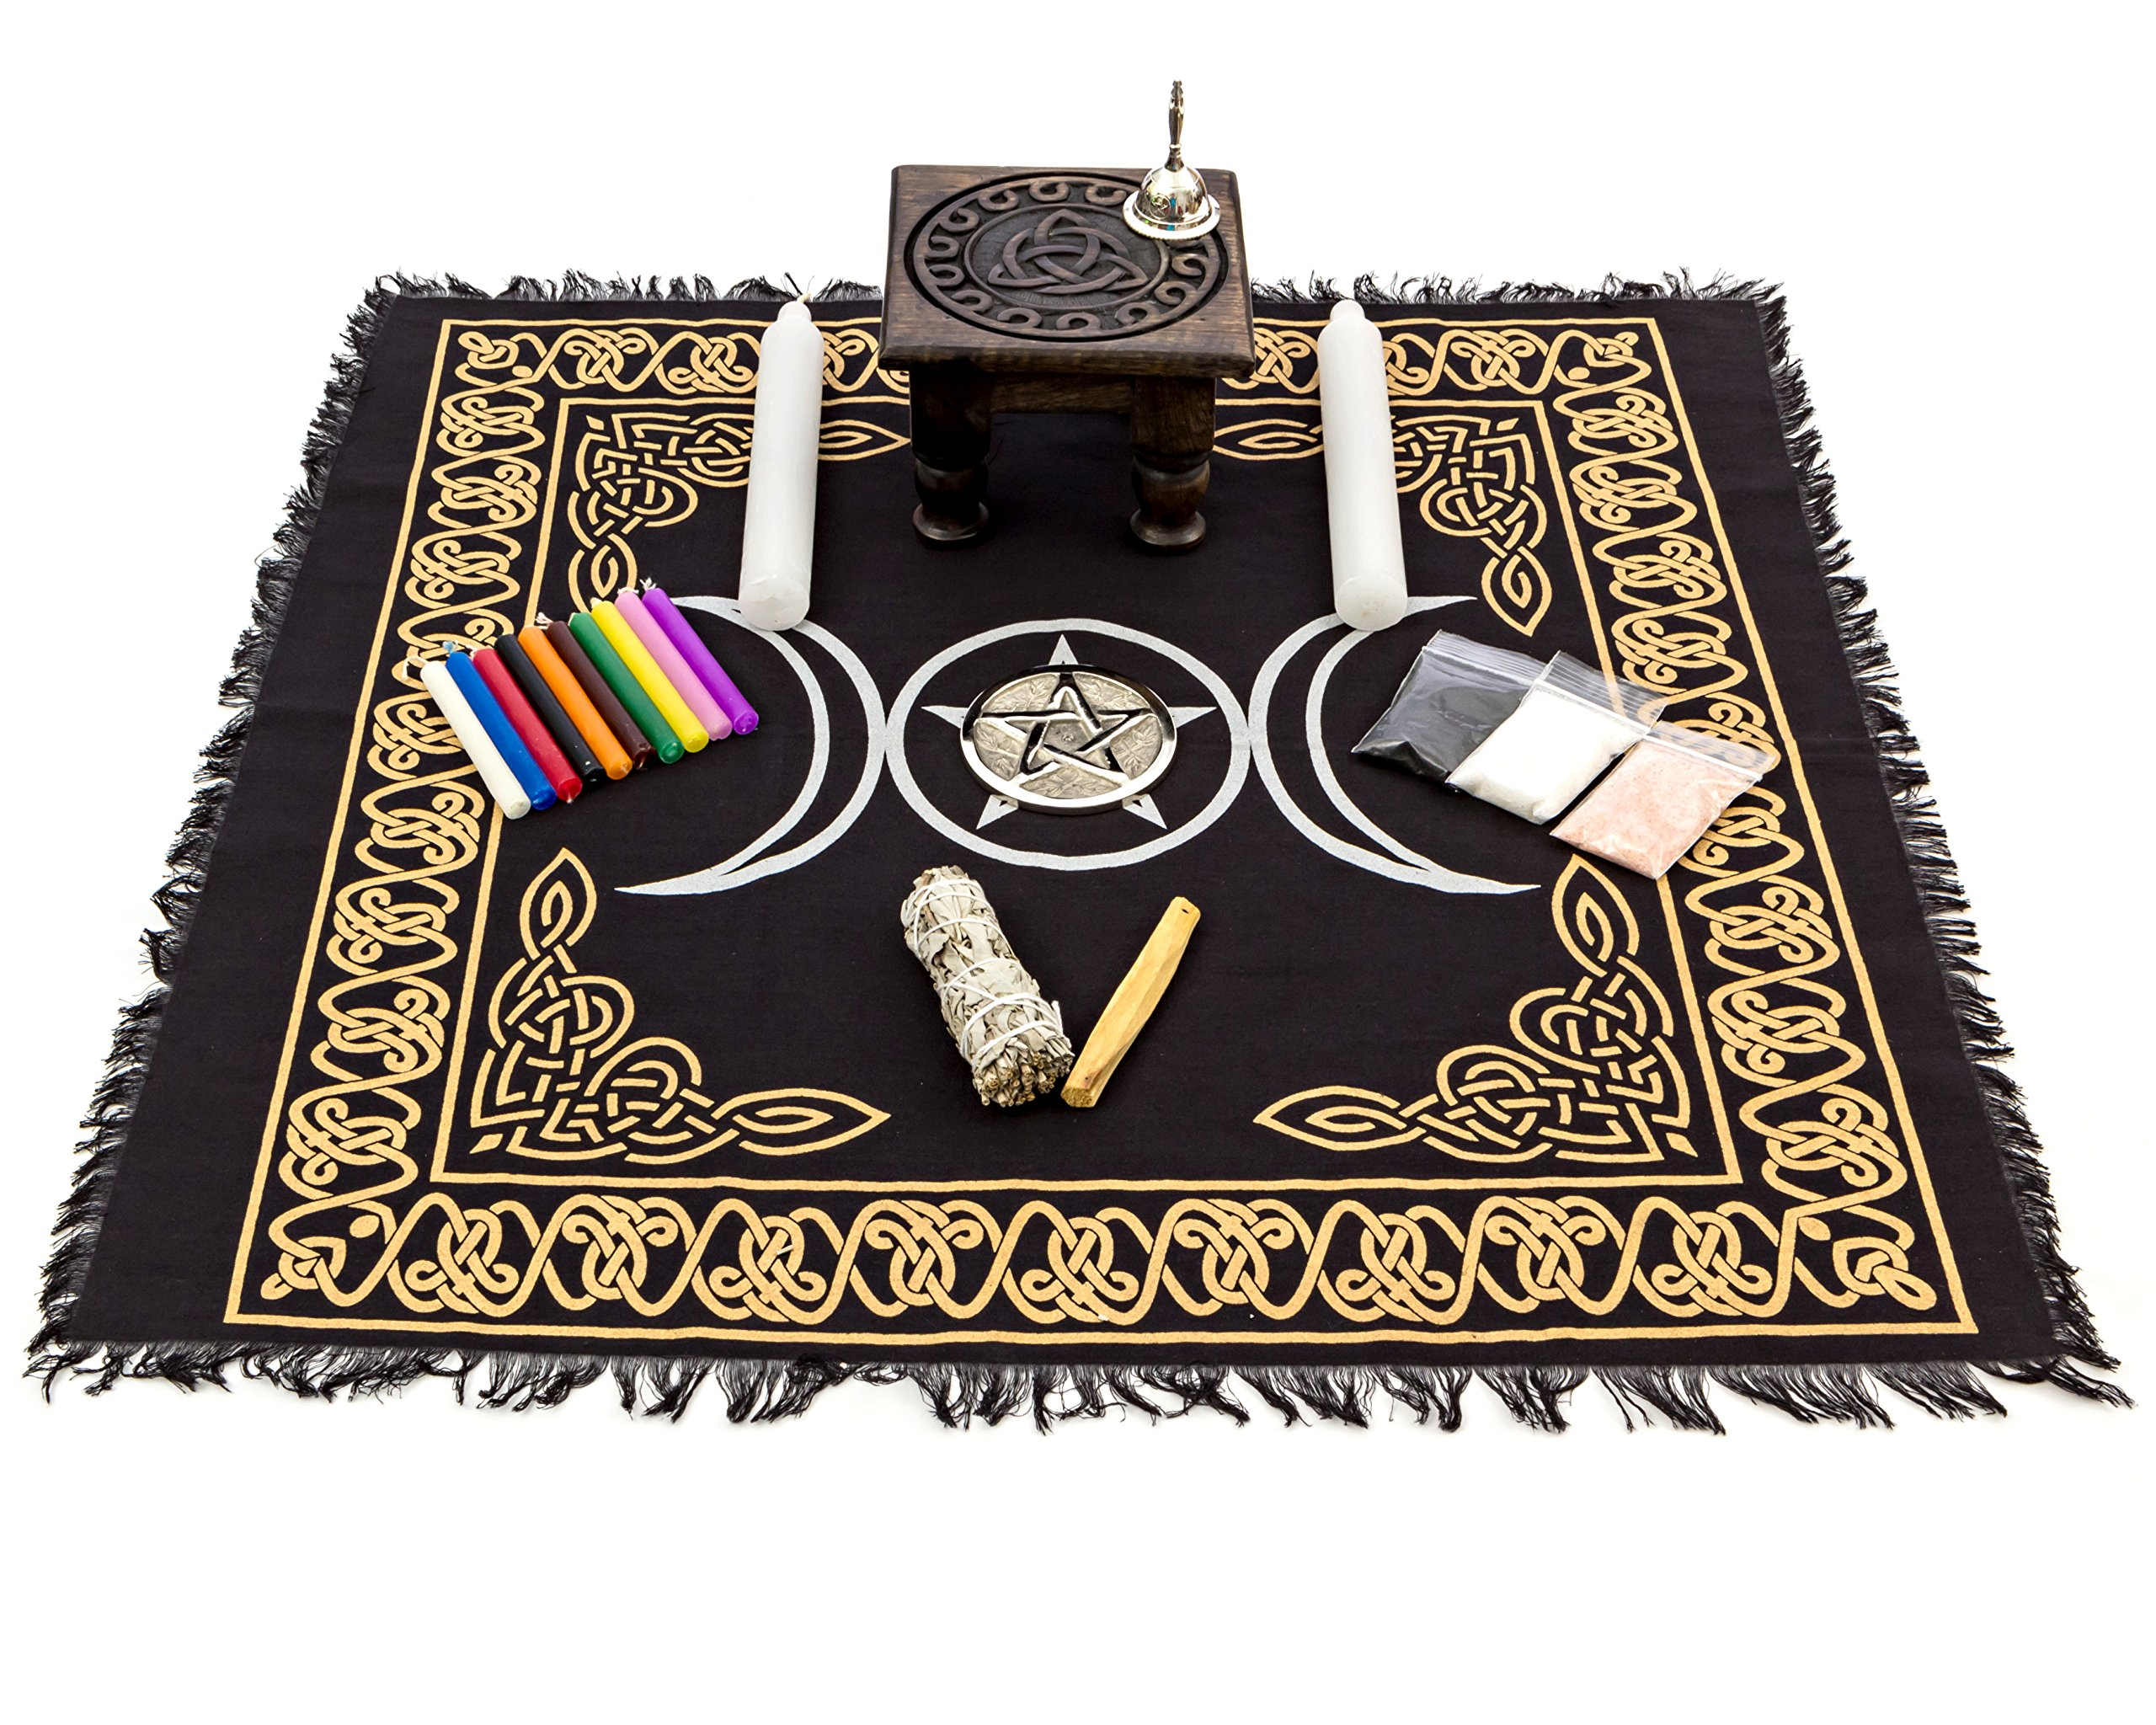 Alternative Imagination Deluxe Wiccan Altar Supply Kit Featuring Triquetra Altar Table